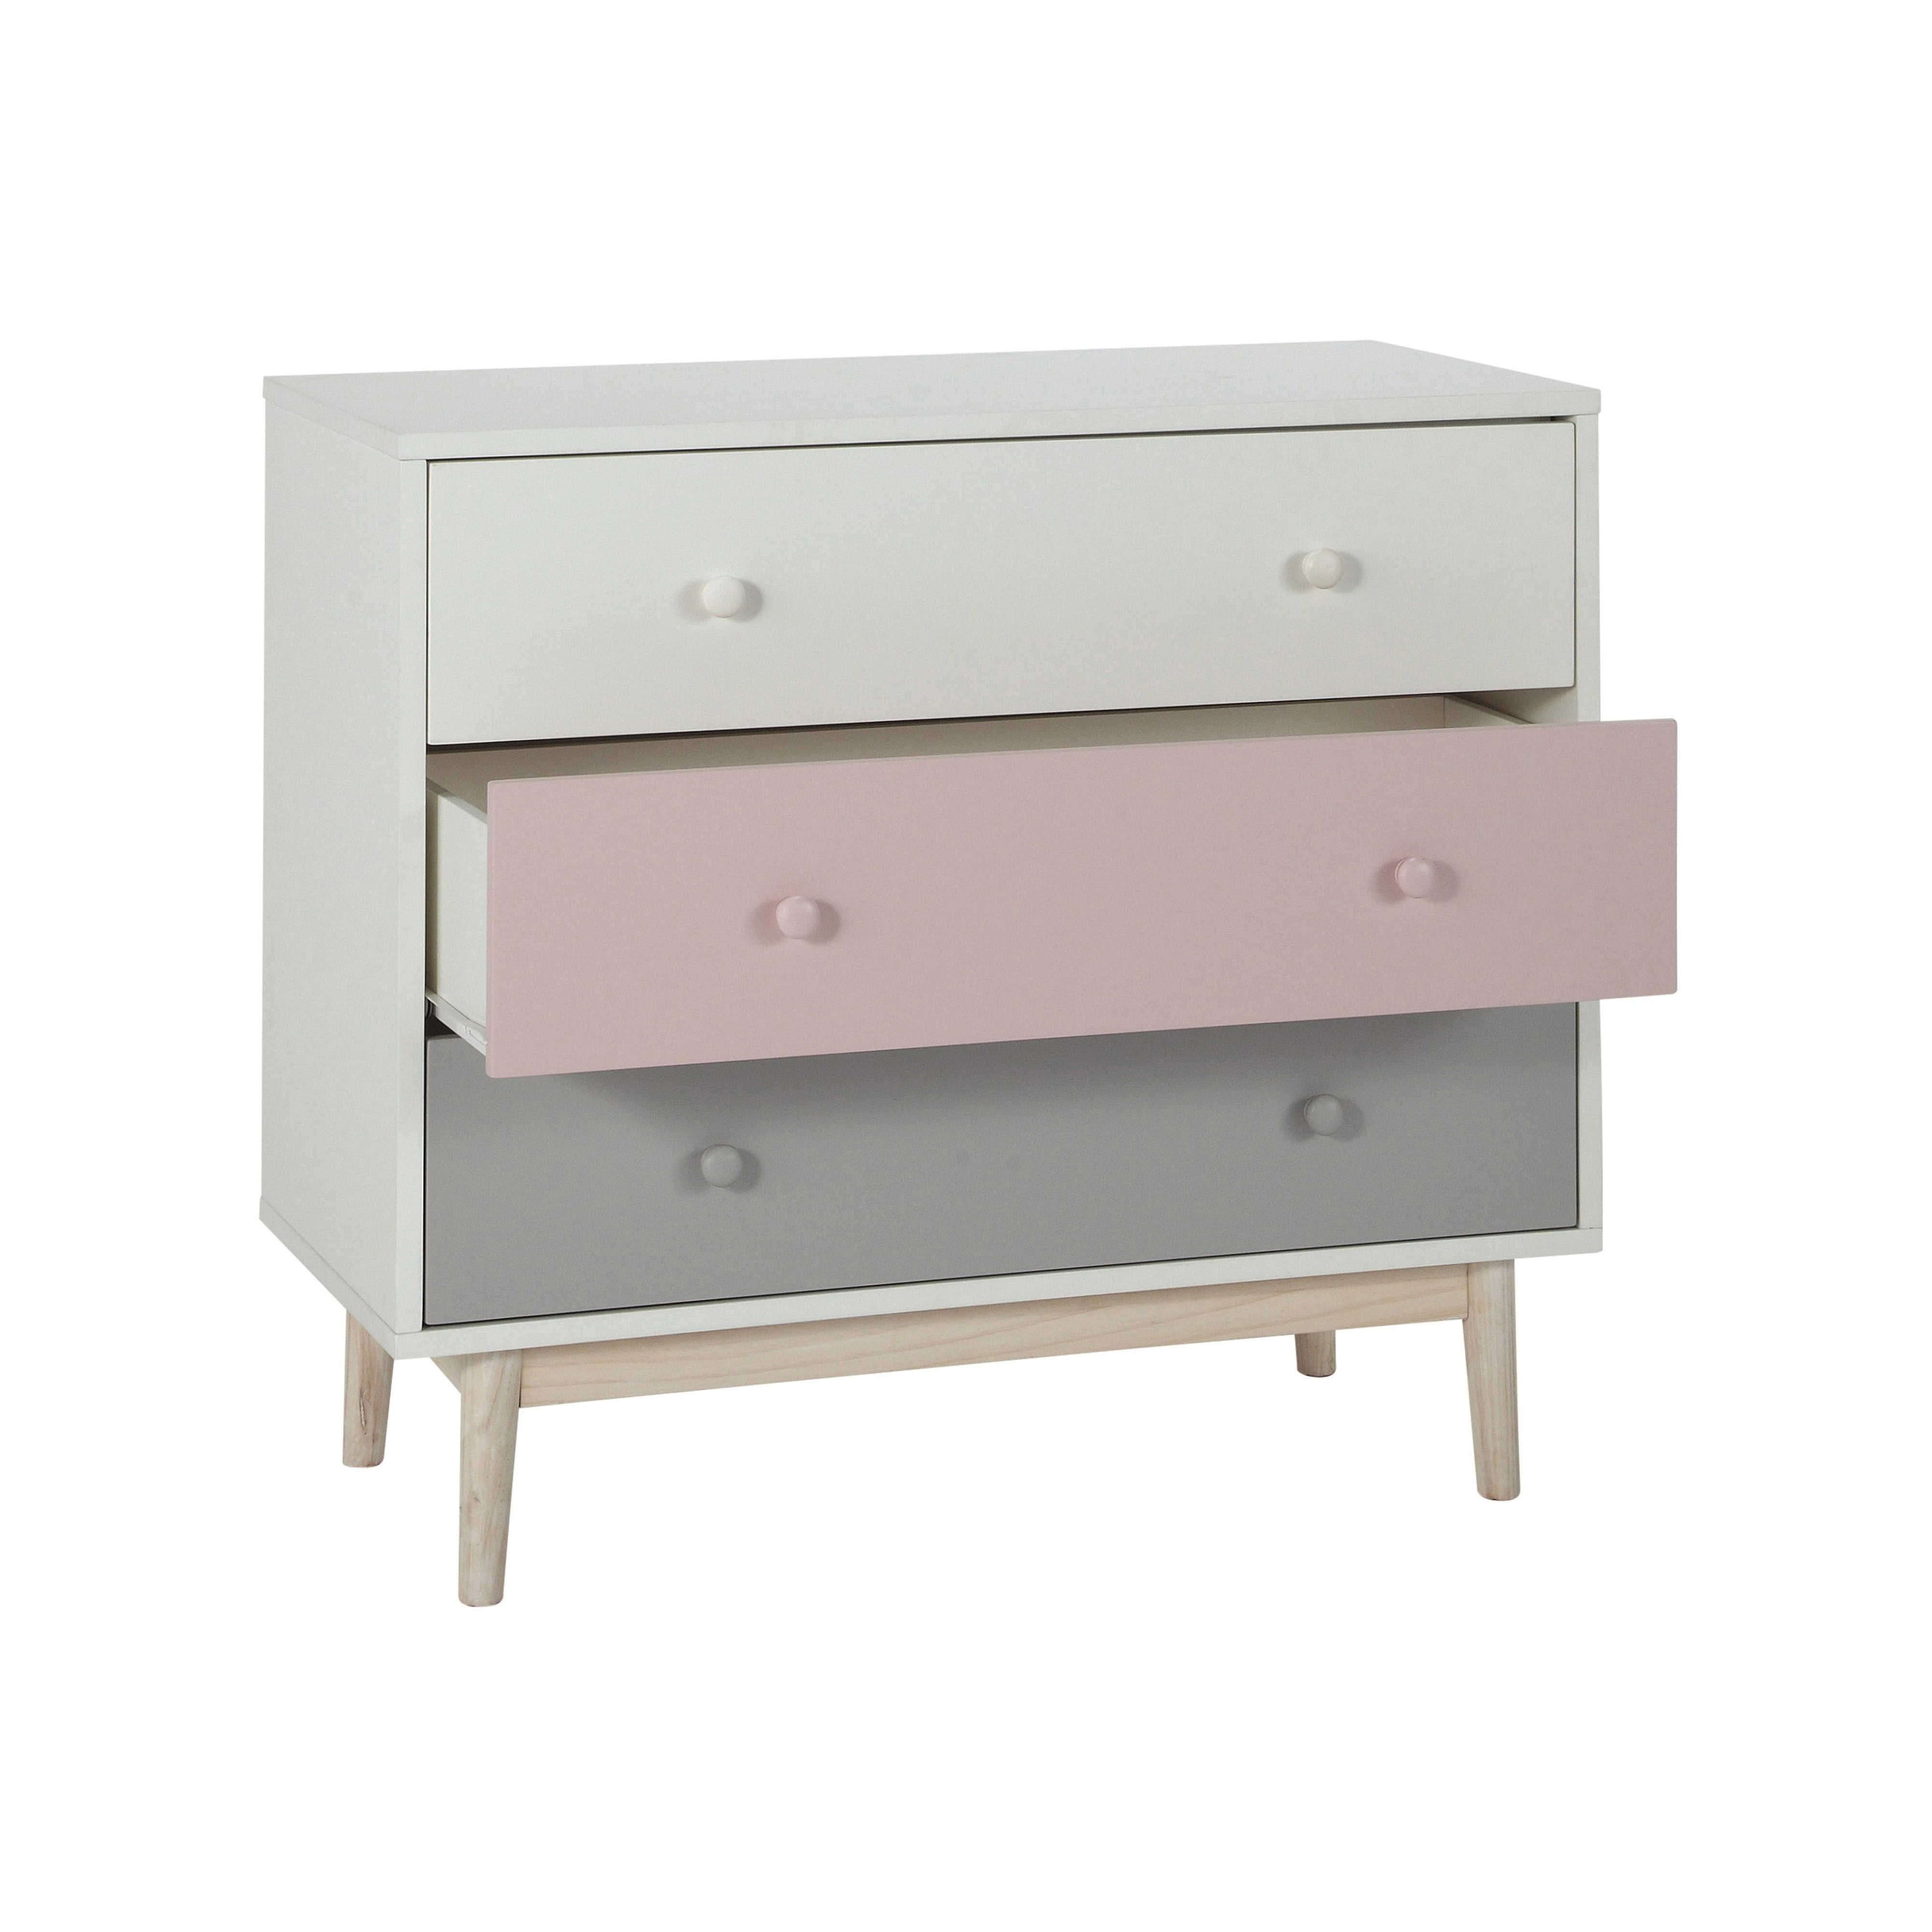 commode vintage blanche et rose blush maison commode enfant et bois blanc. Black Bedroom Furniture Sets. Home Design Ideas